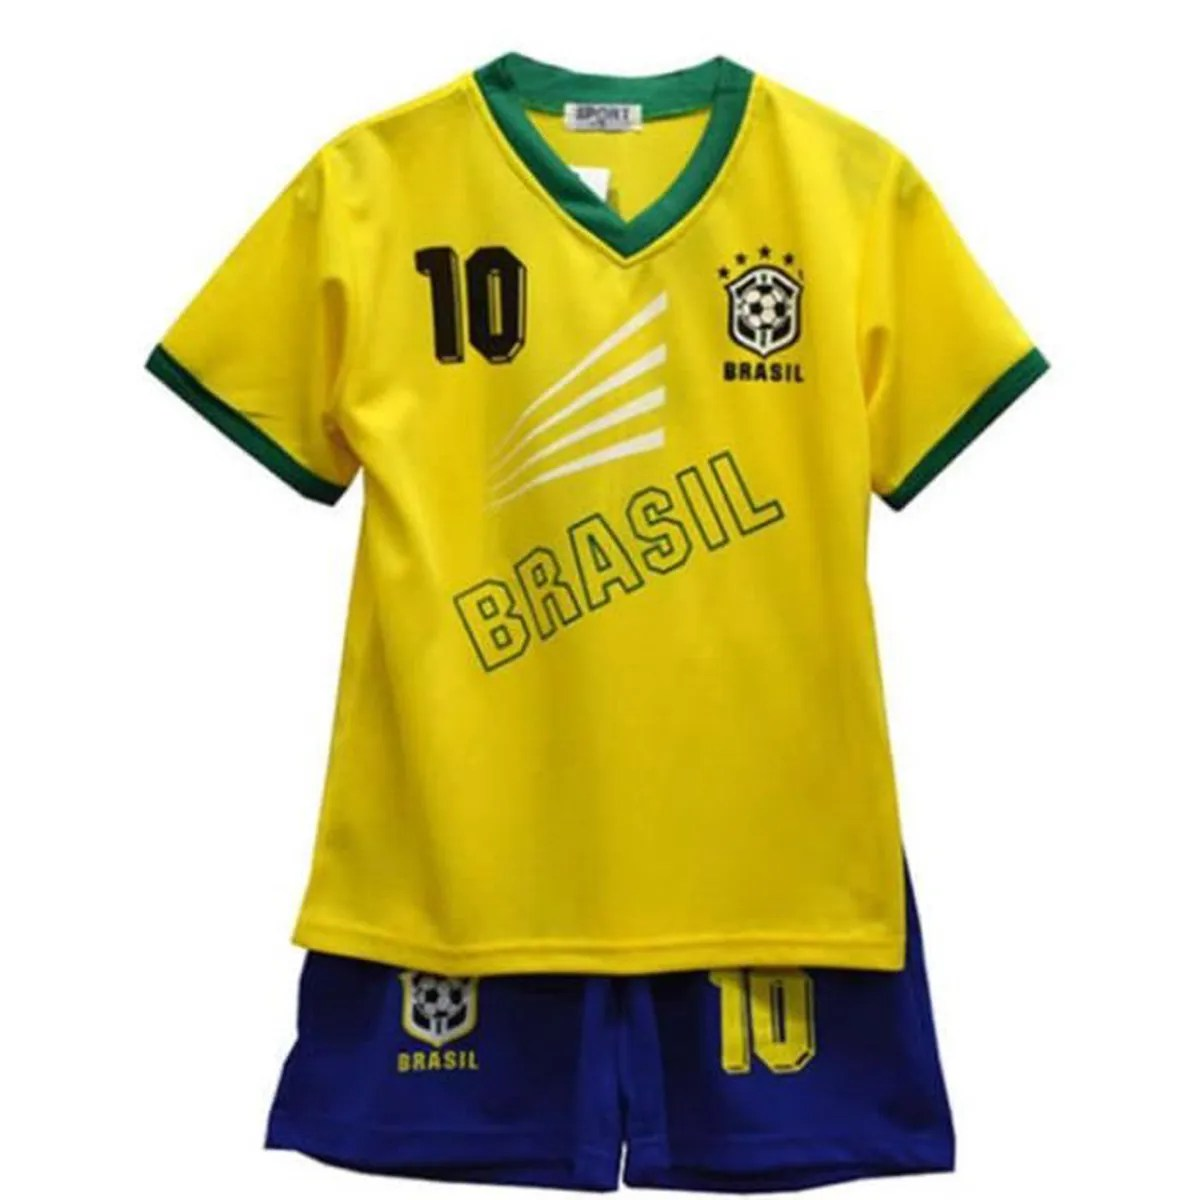 Image result for le maillot brésilien football